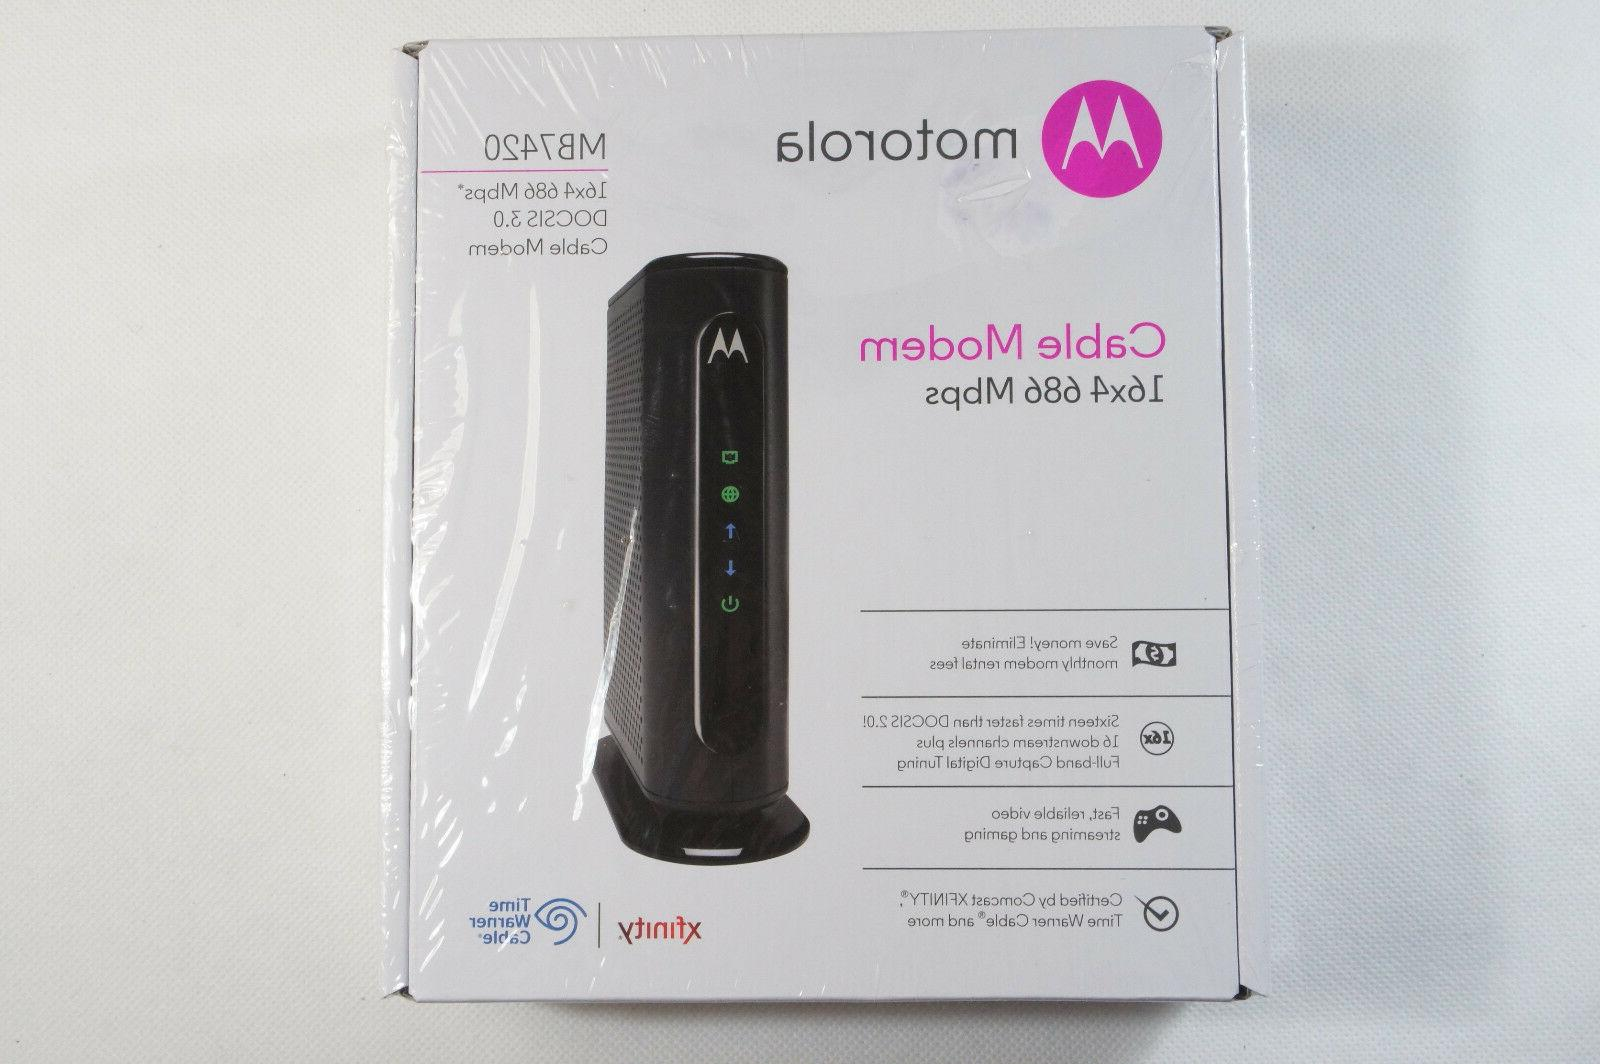 mb7420 10 300mbps modem brand new free